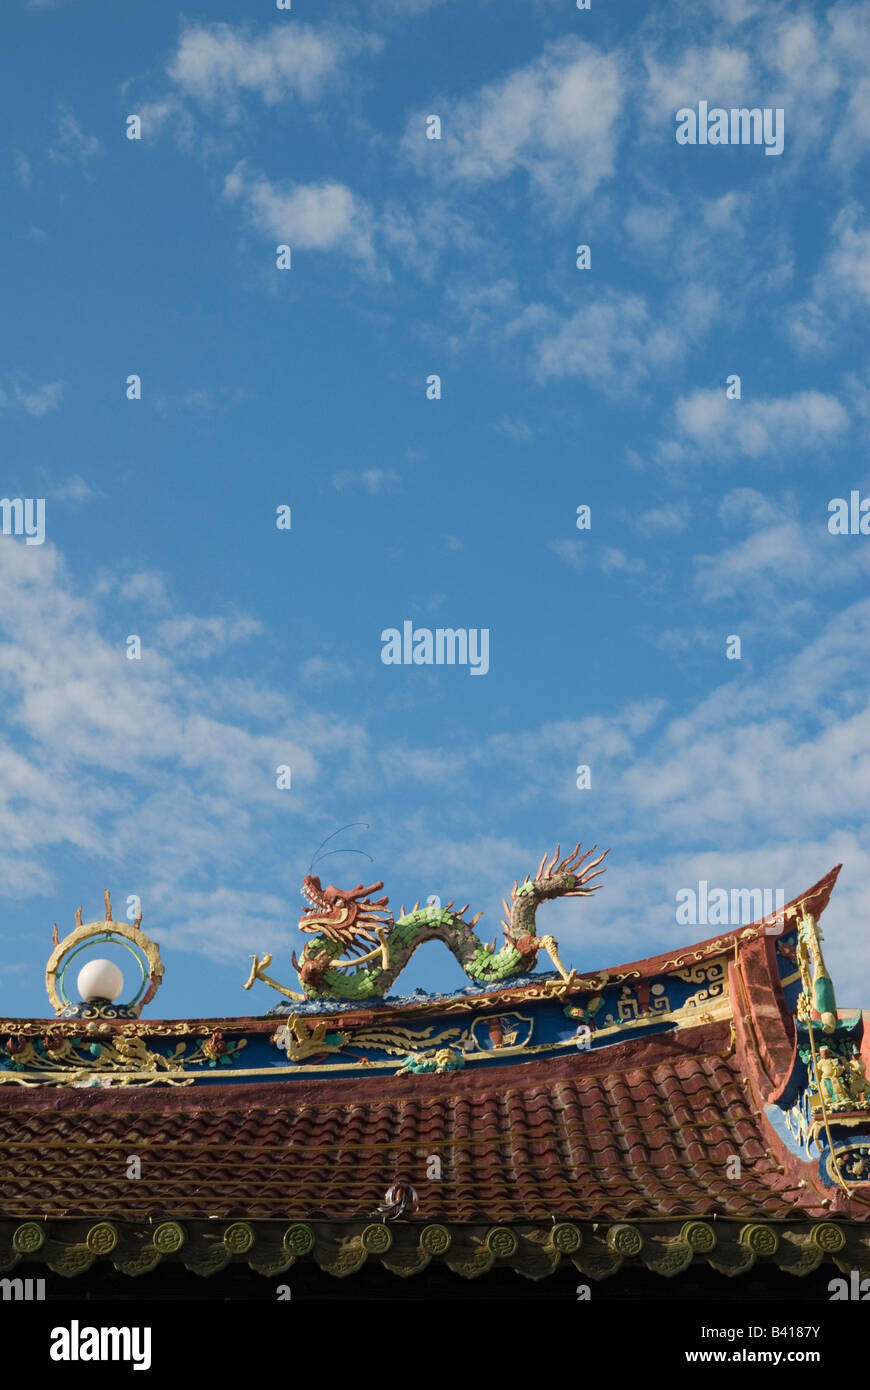 Eng Choon Association rooftop dragon and blue sky, Malacca, Malaysia - Stock Image